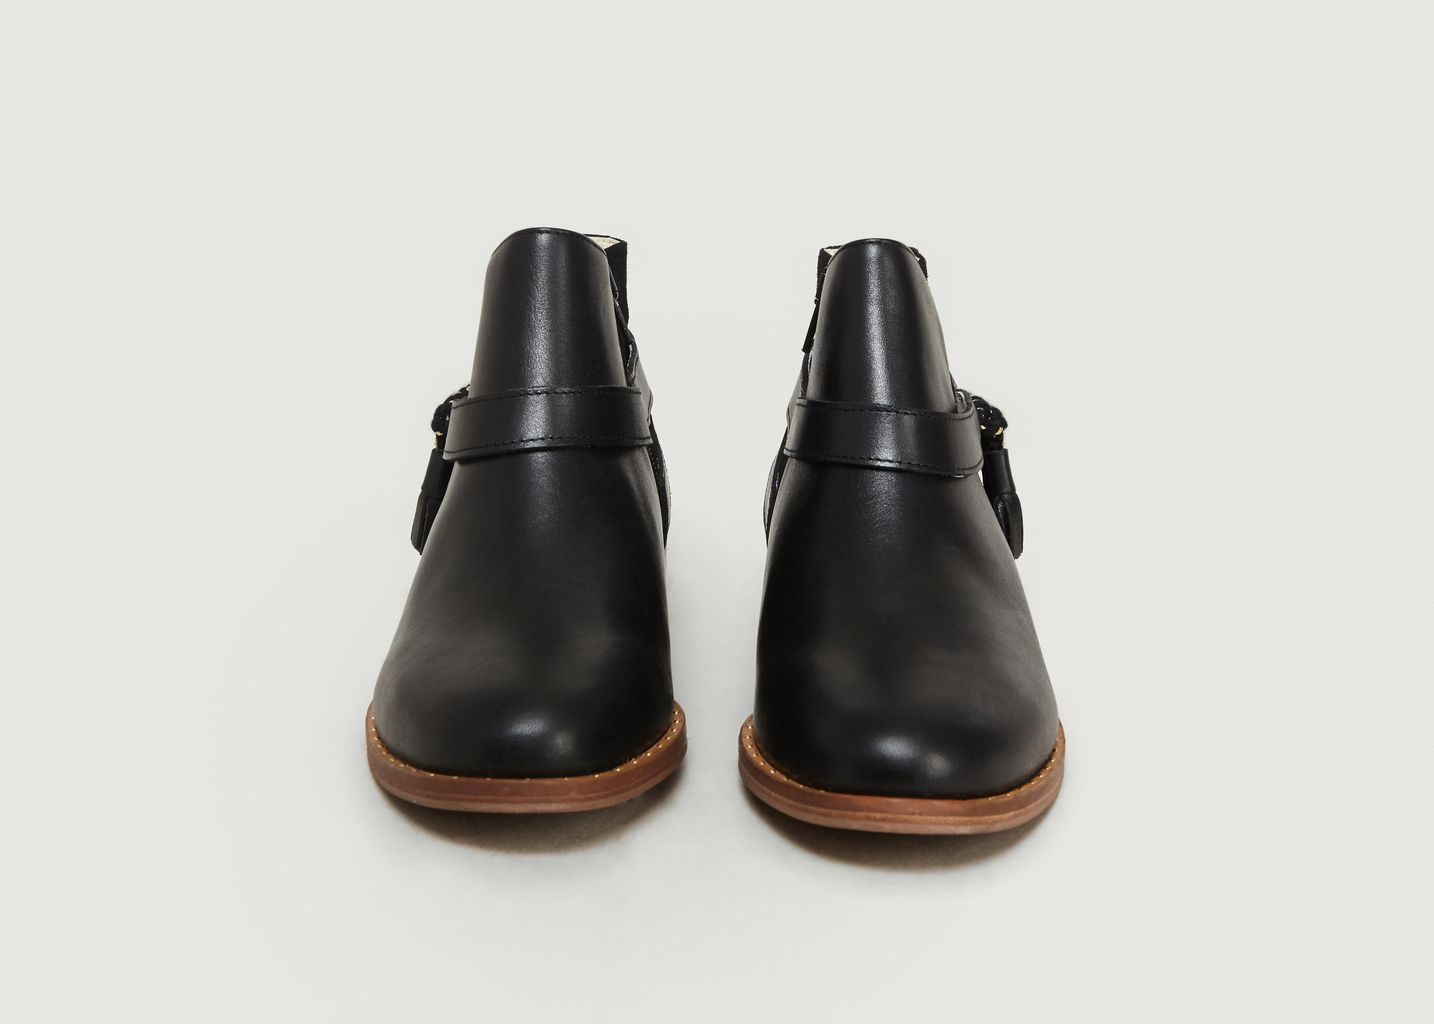 Bottines Alice - M. Moustache